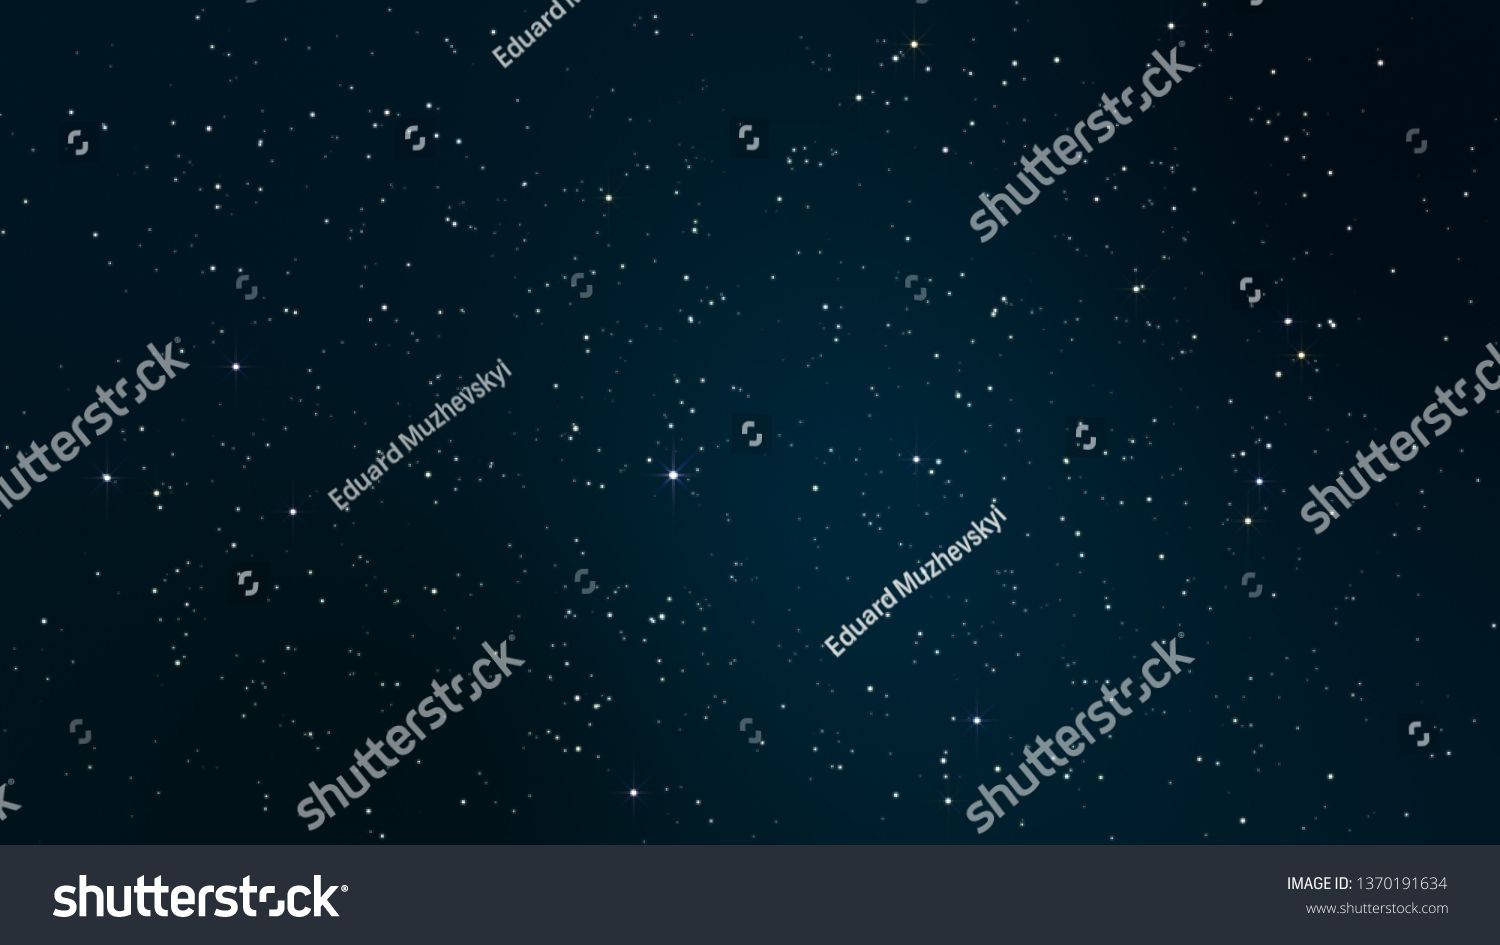 Night Starry Skies With Twinkling And Blinking Stars Abstract Dark 3d Illustration With Glowing Stars Or Parti Star Illustration Glow Stars Science Background